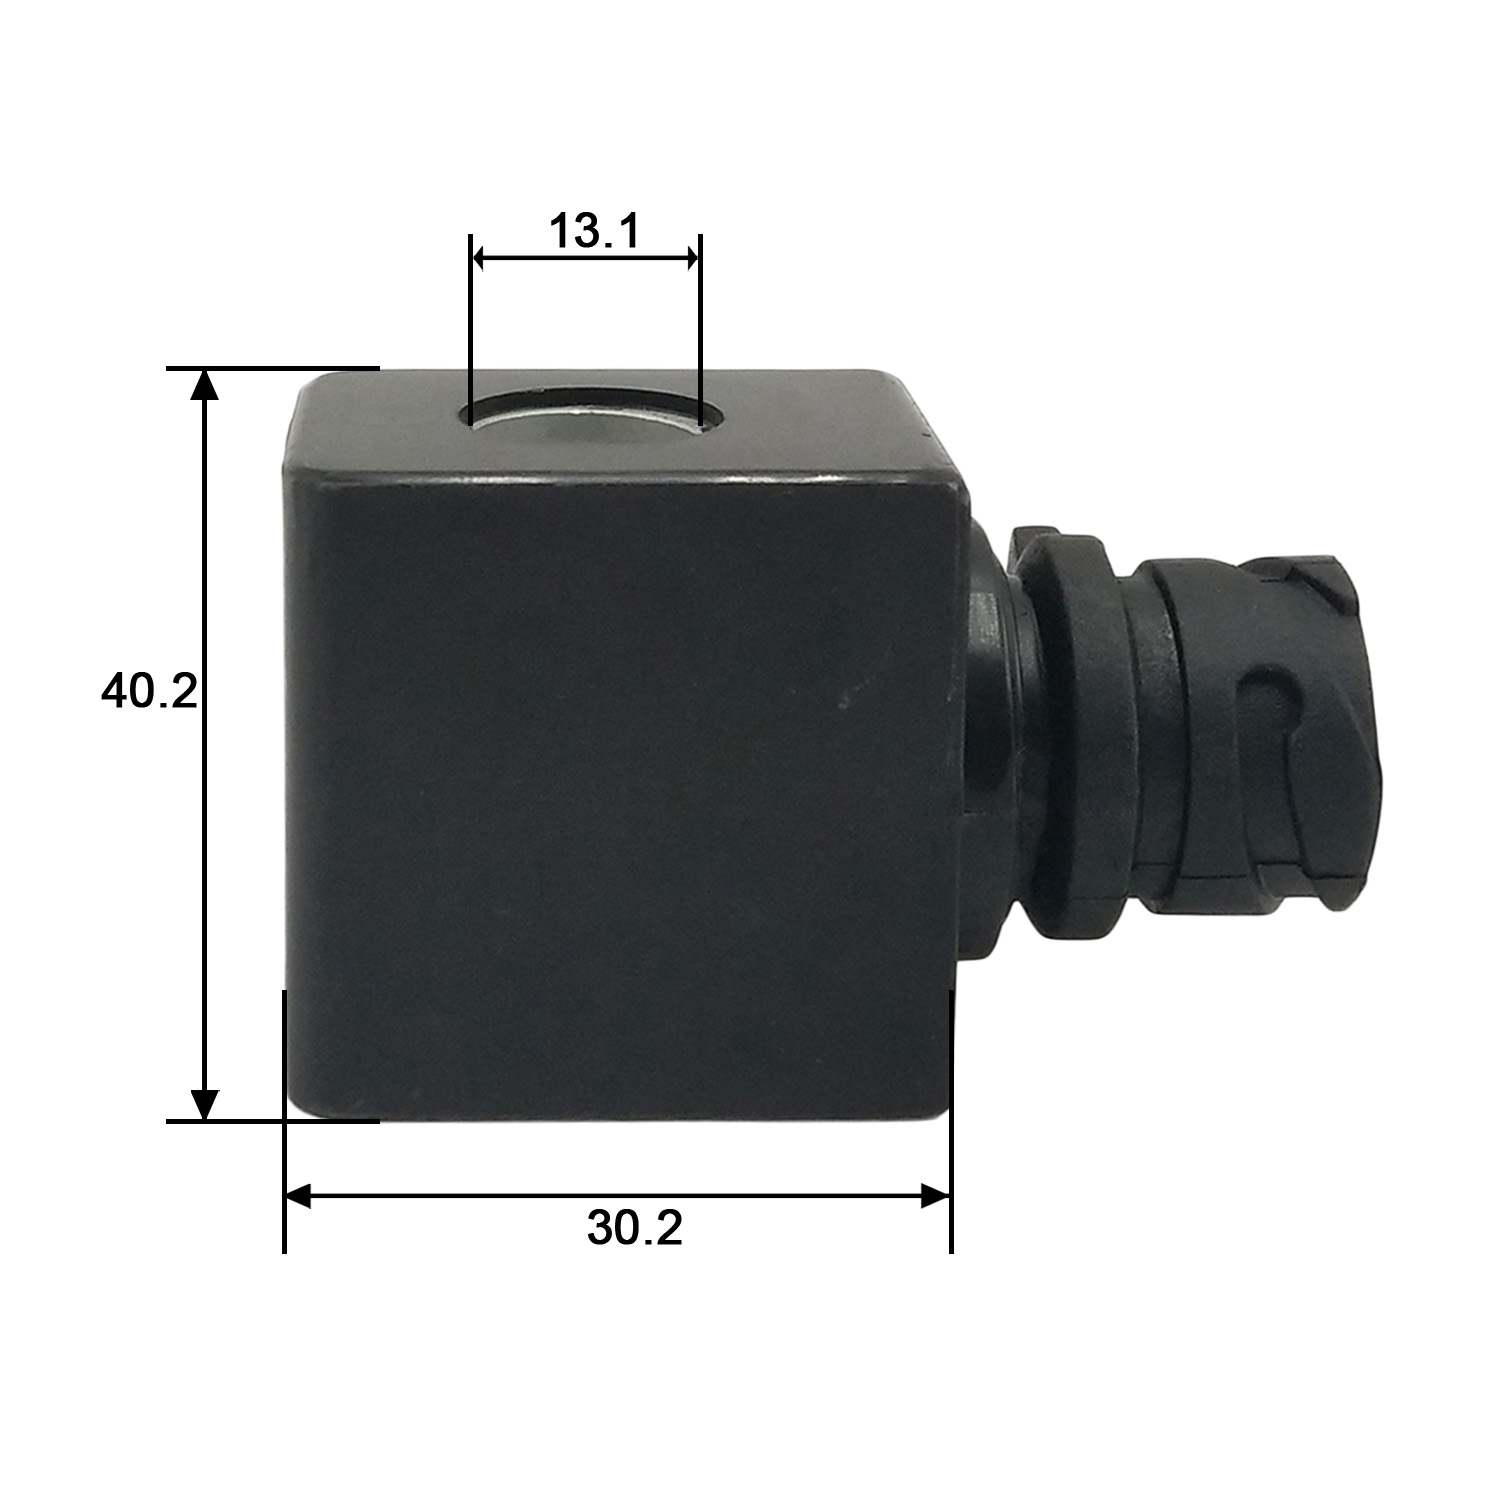 Dimension of BB13241042 Solenoid Coil: